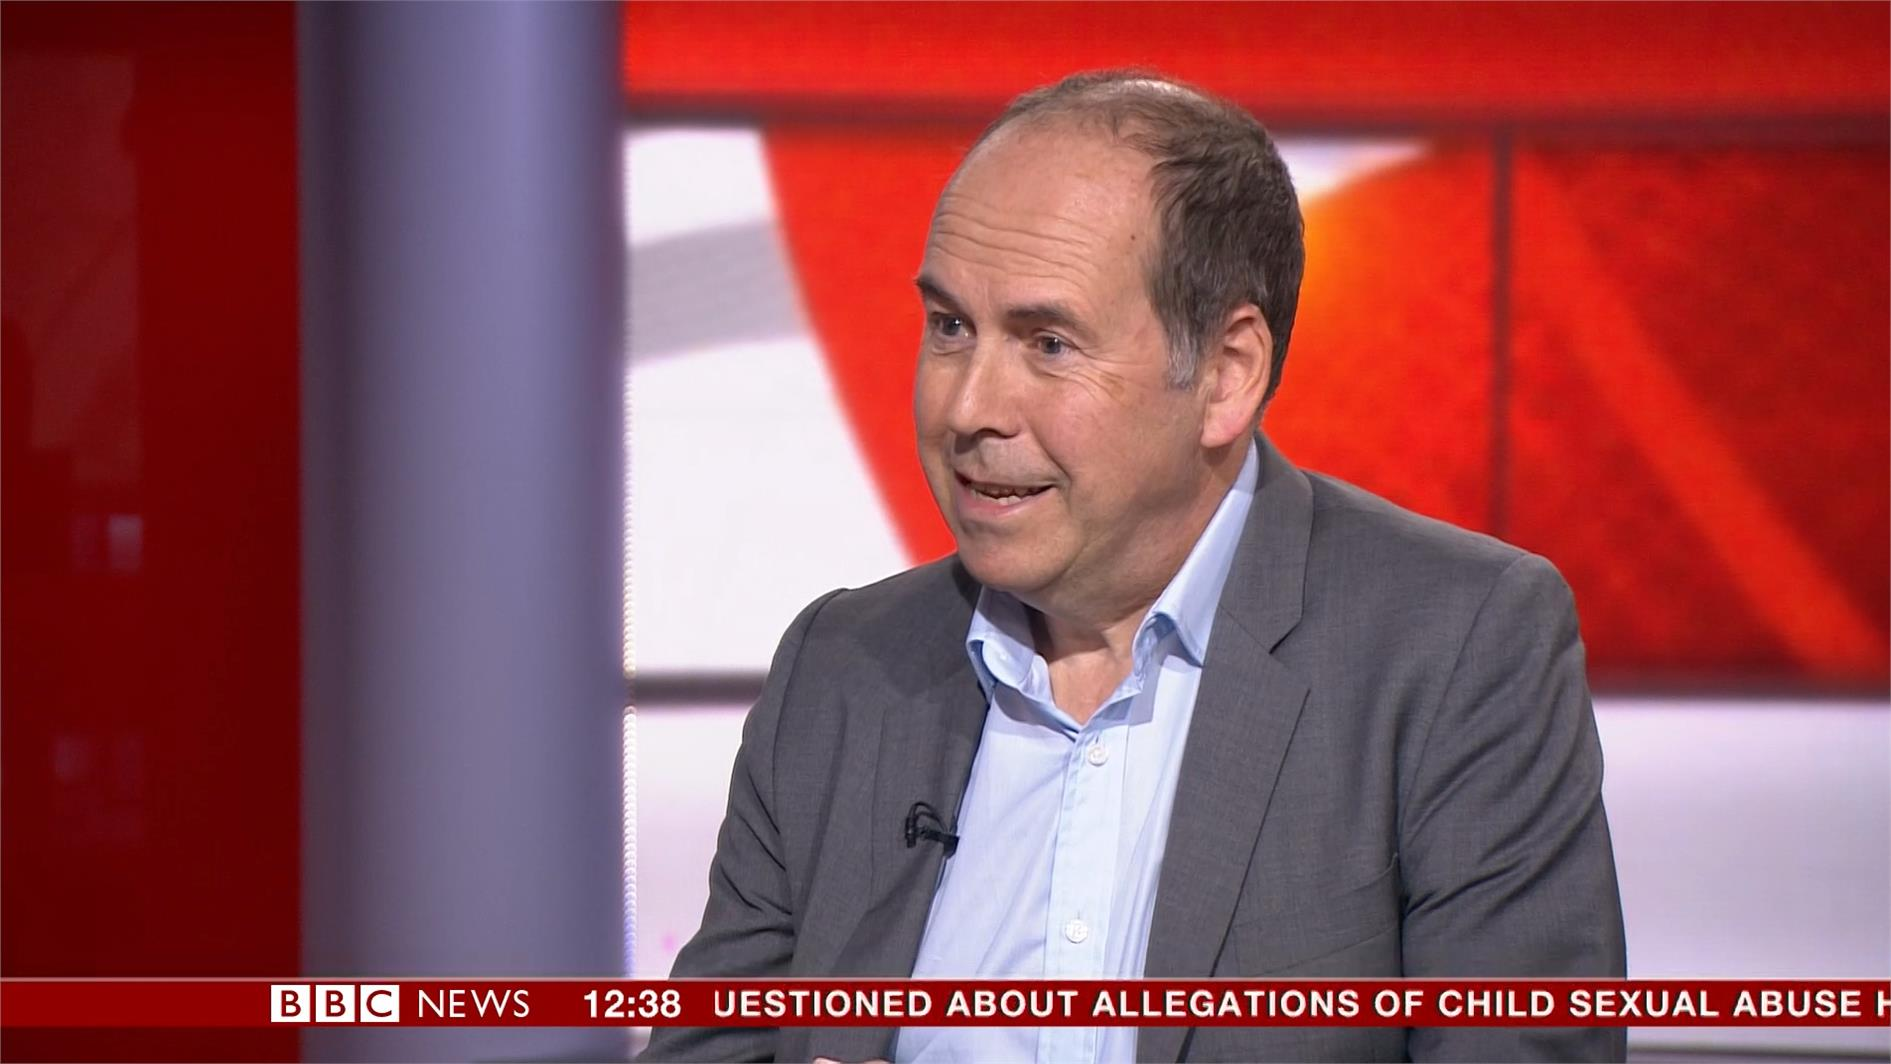 BBC News correspondent Rory Cellan-Jones reveals Parkinson's diagnosis